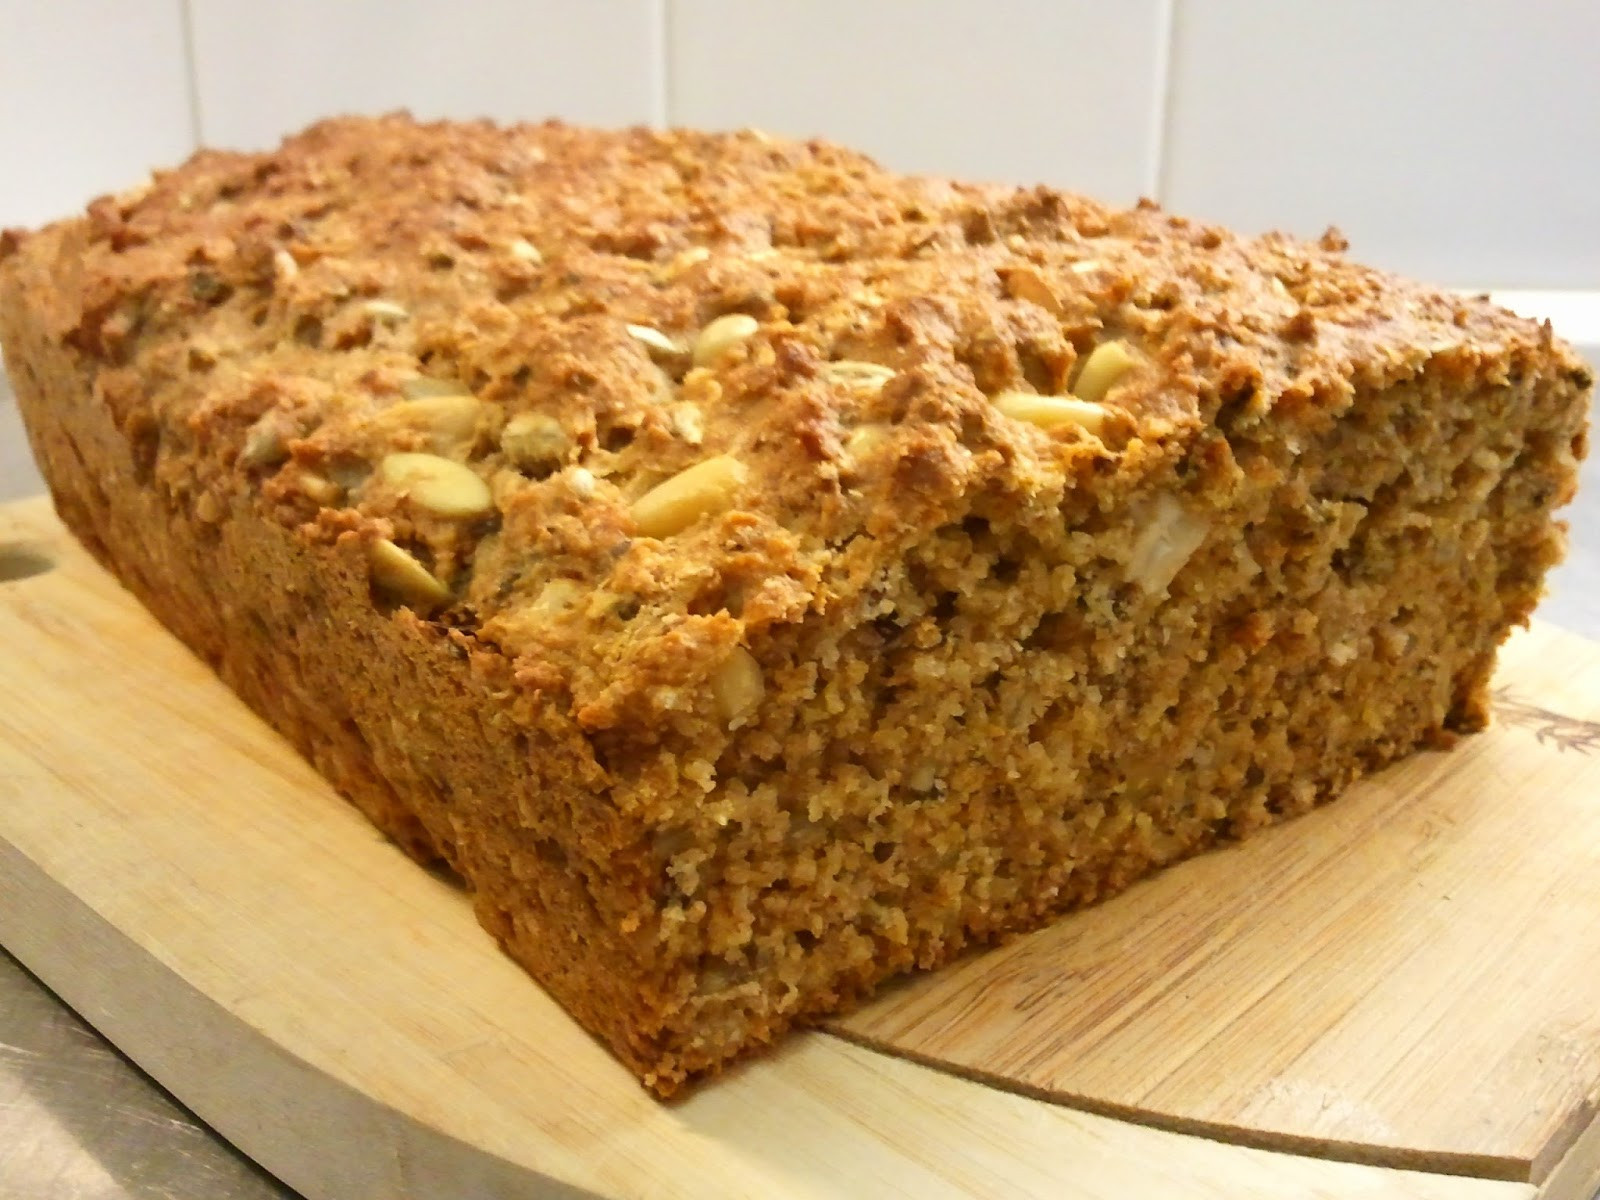 Baking Healthy Bread  Riittalicious Bake My Day Healthy Nut And Seed Bread